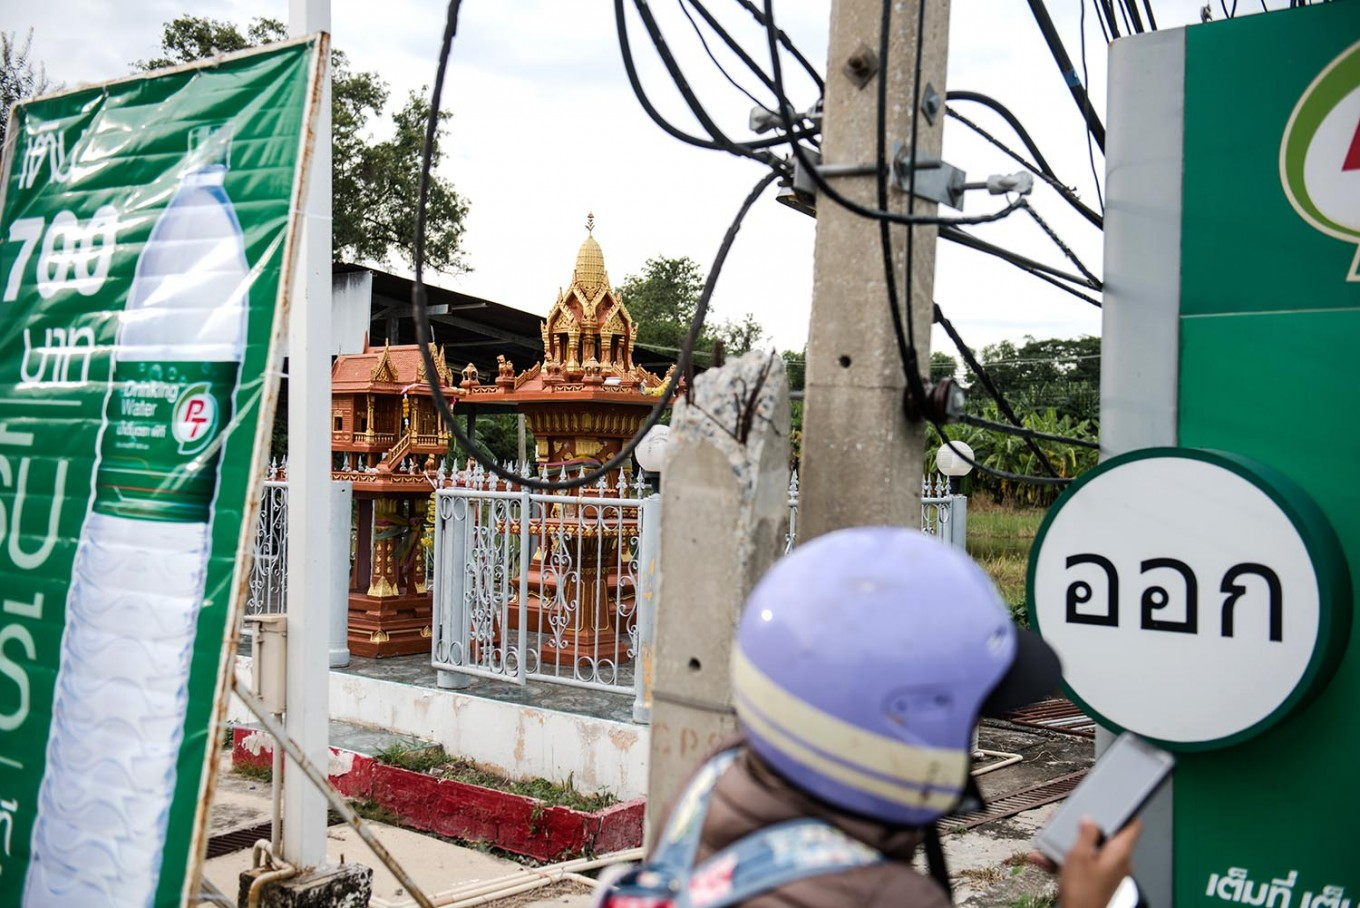 A spirit house is located underneath a billboard in Ayutthaya, Thailand. JP/Anggara Mahendra